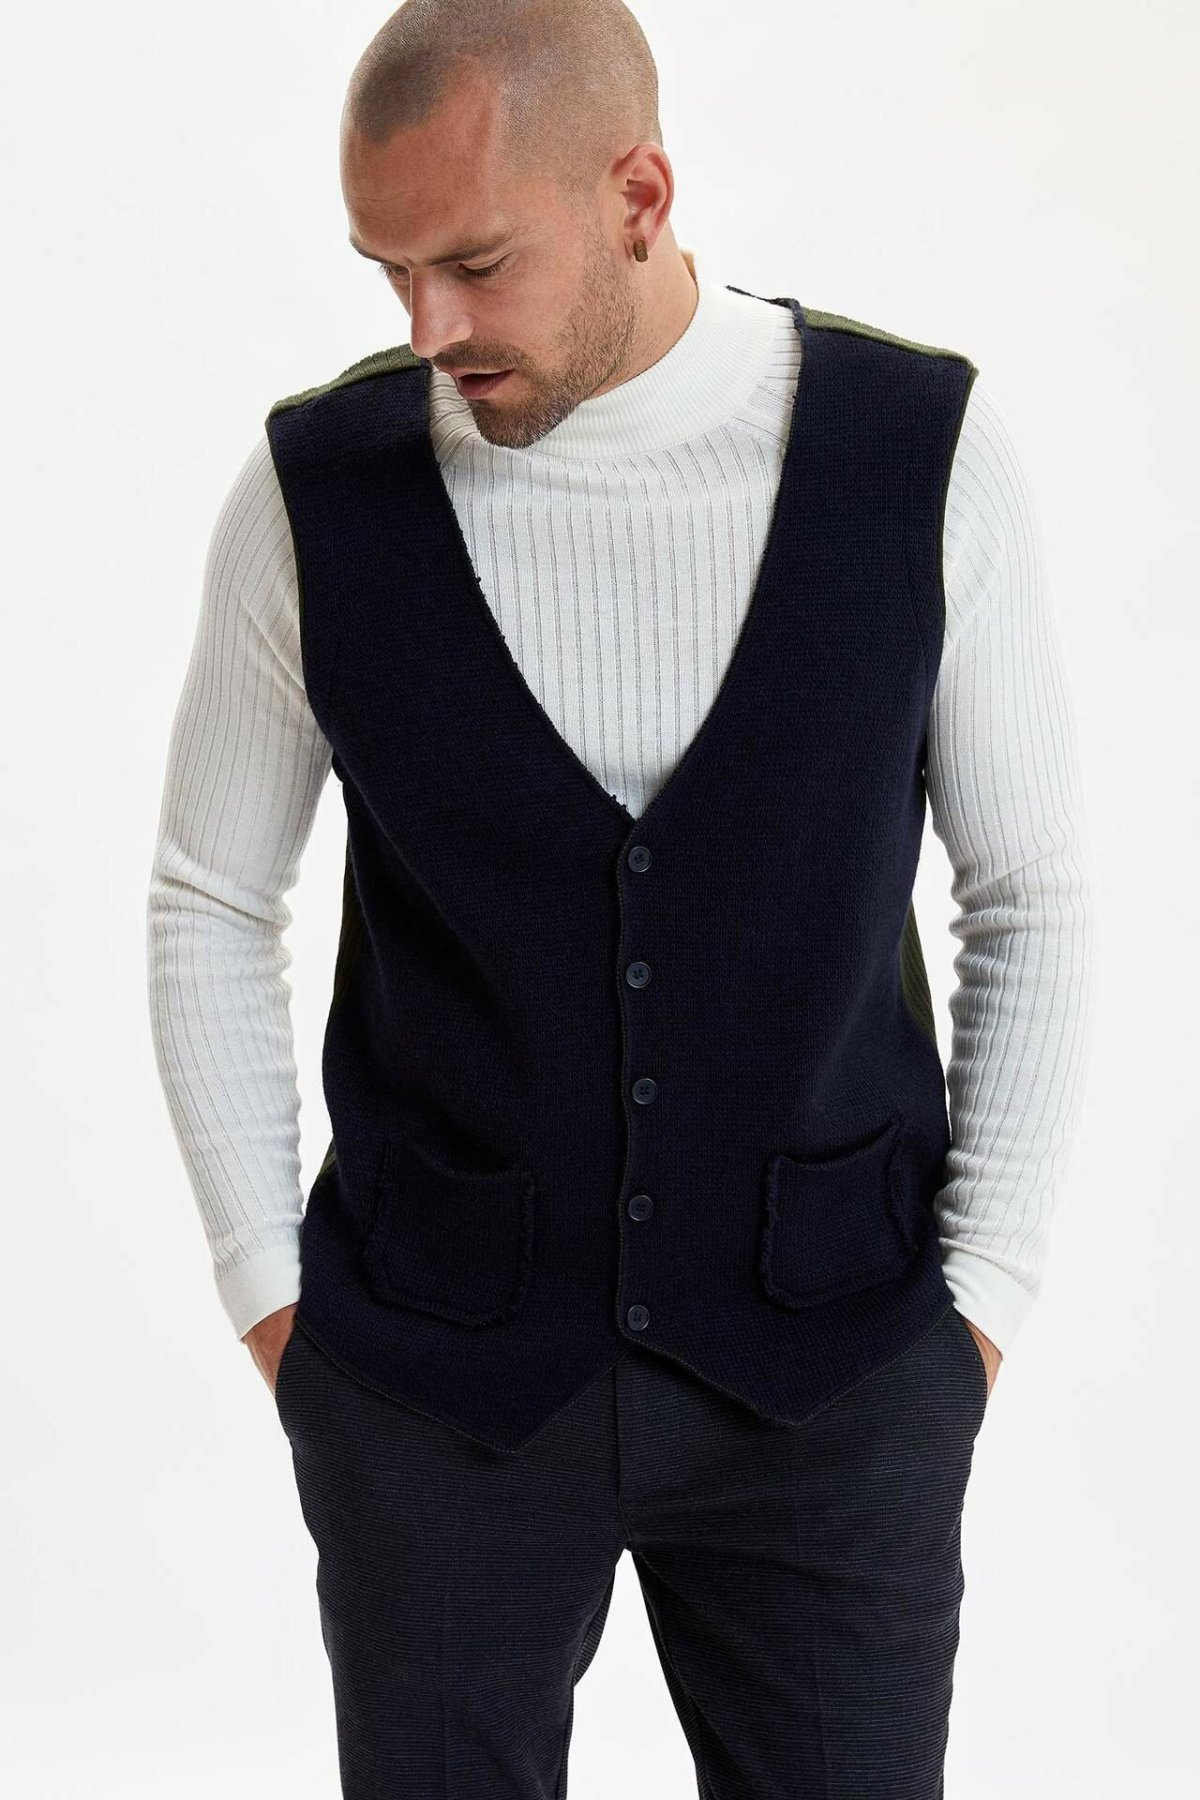 DeFacto Man Spring Knitted Vest Men Casual Pocket Decors Vest Tops Male Black Green Color Vest-I3539AZ18SP